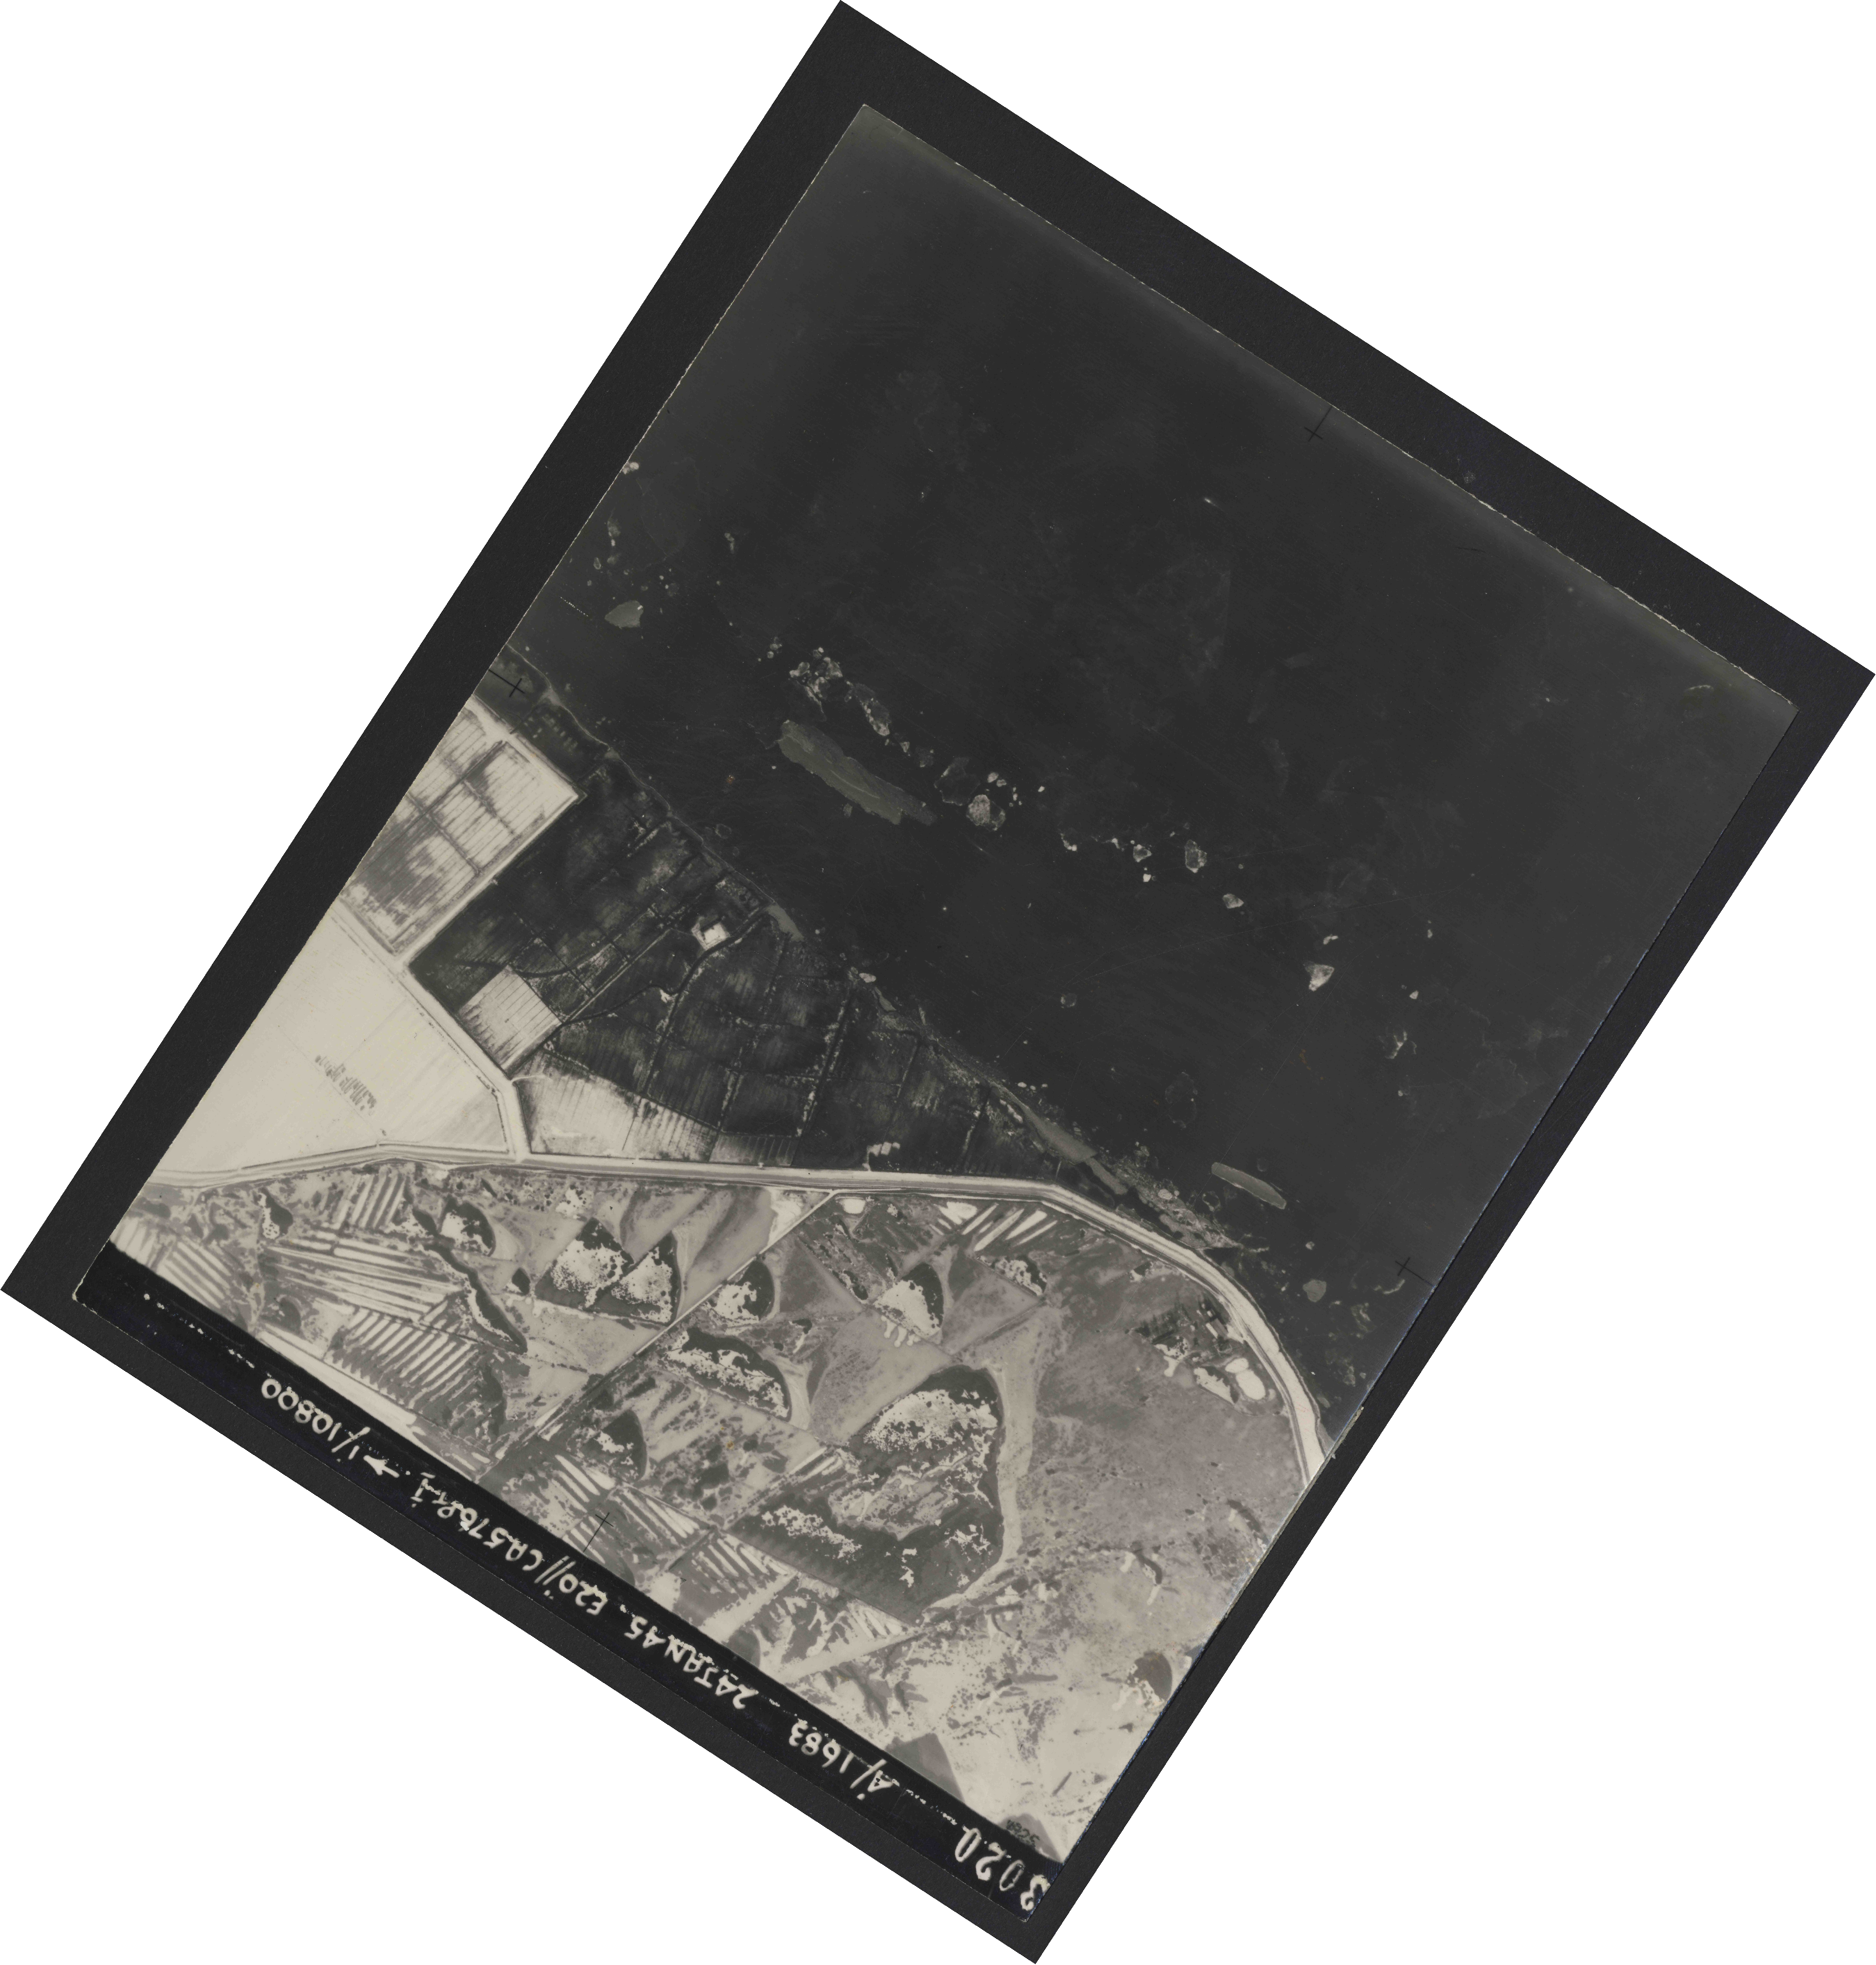 Collection RAF aerial photos 1940-1945 - flight 268, run 01, photo 3020